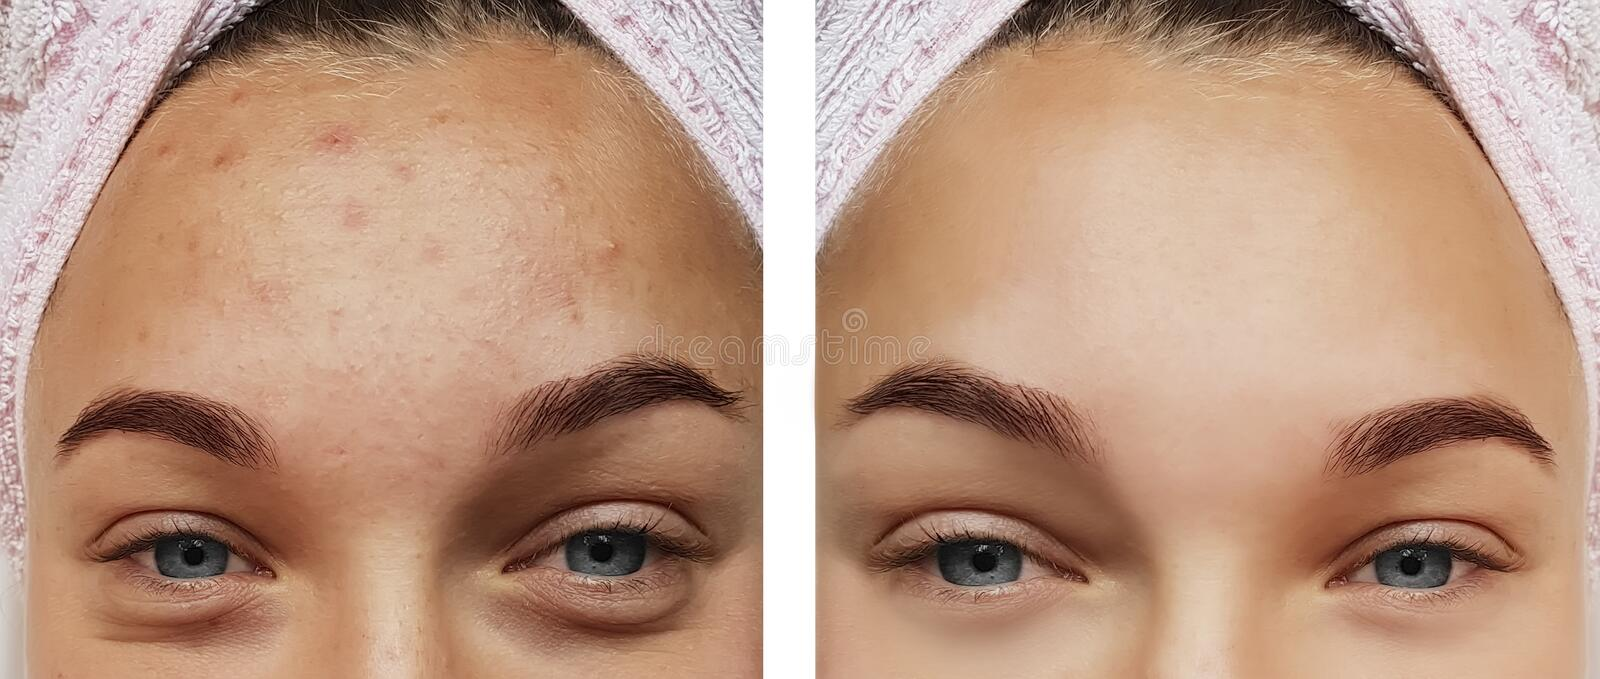 De behandelingsclose-up van het meisjesoog, verwijdering before and after procedures, therapieacne stock foto